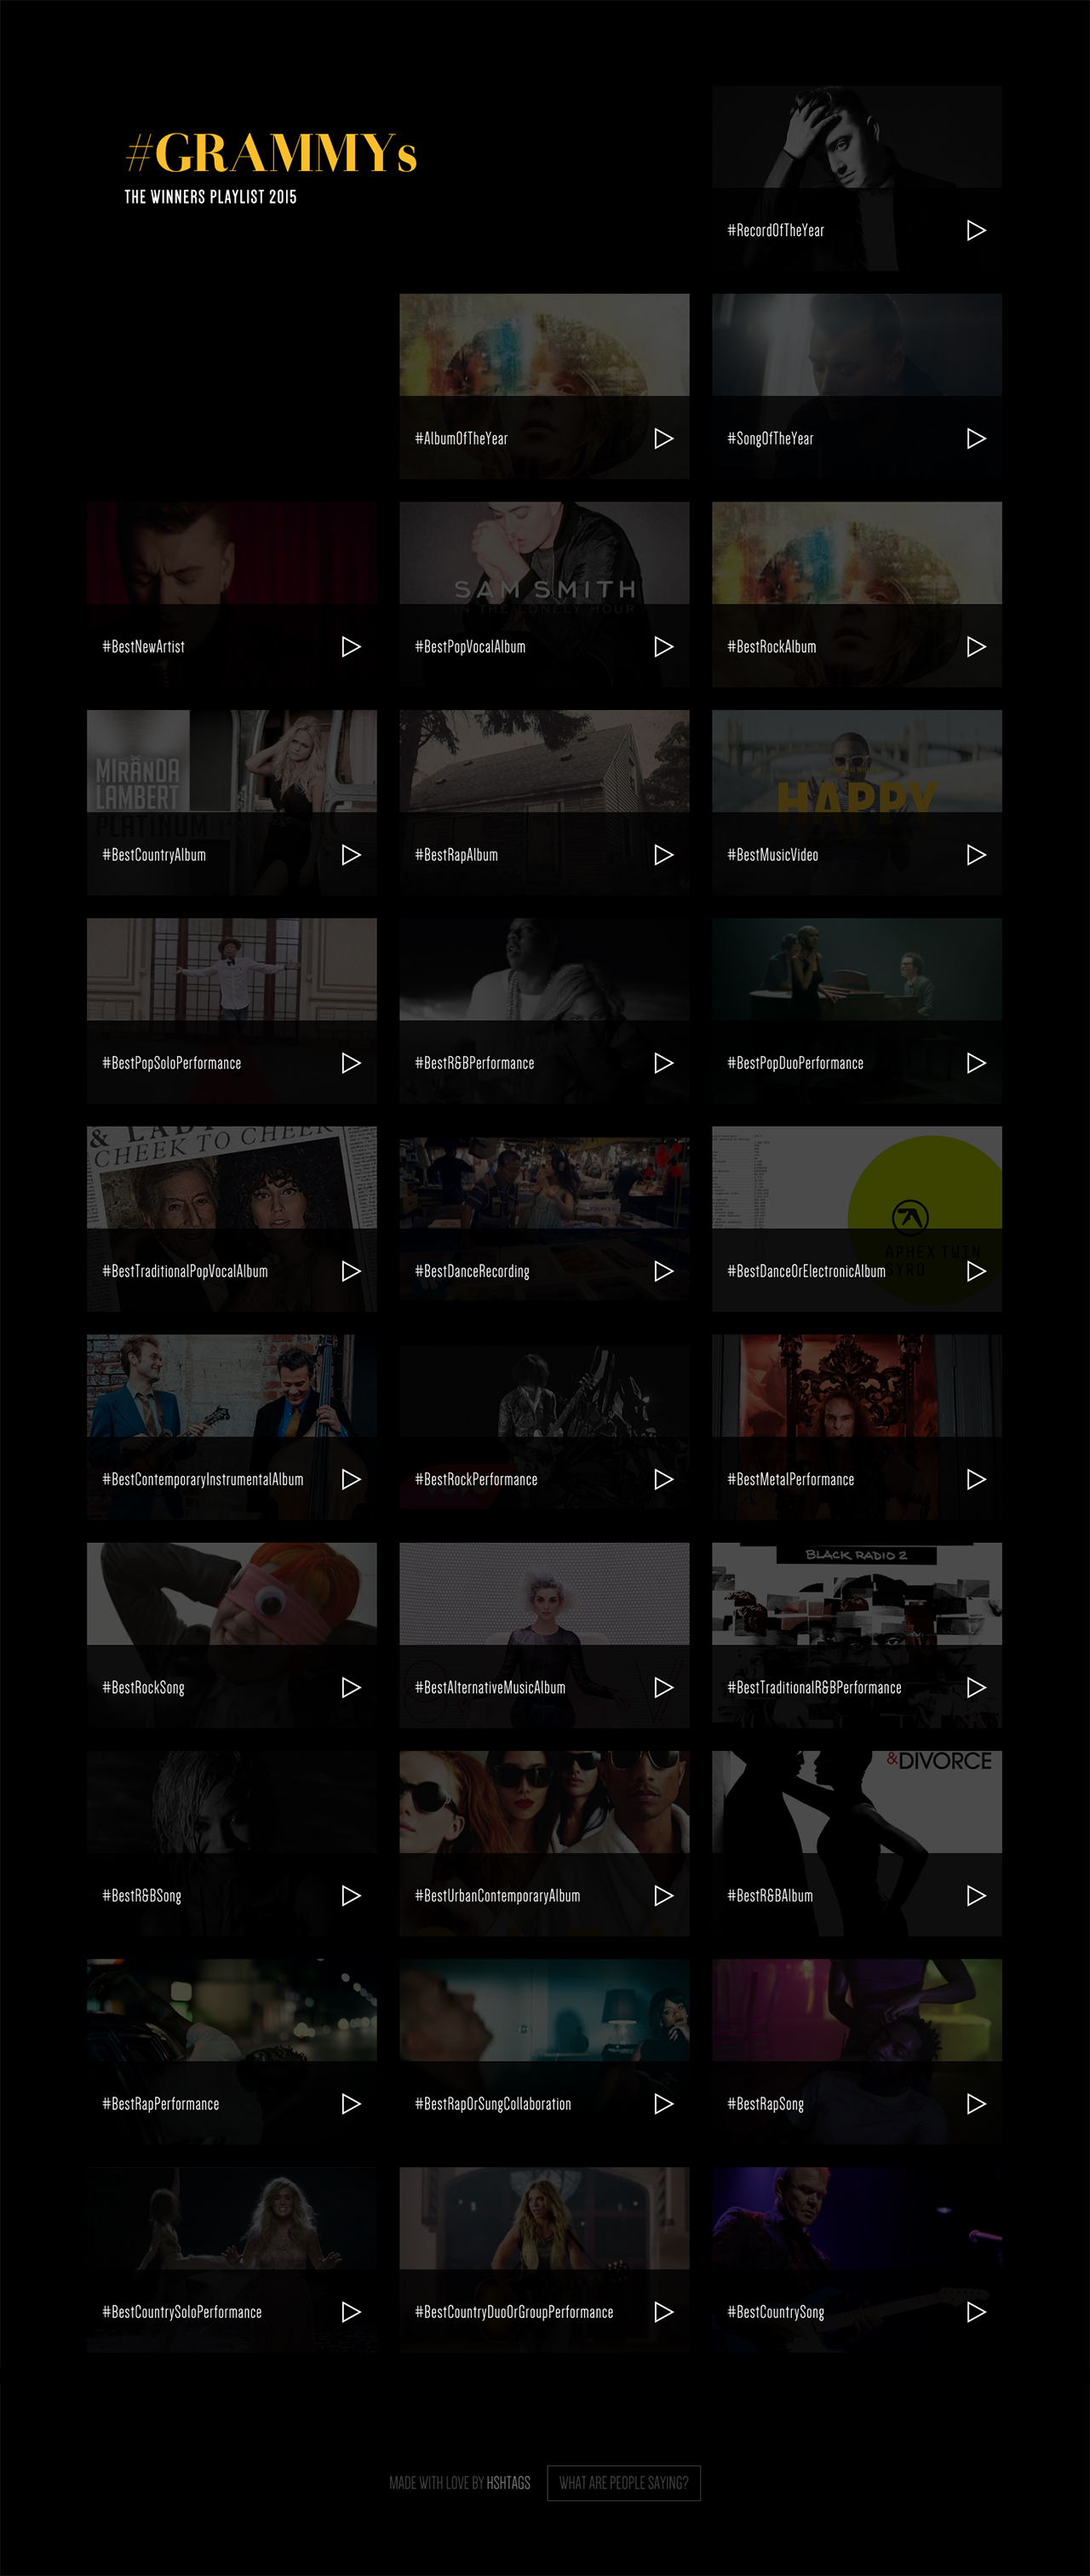 Winners Playlist for #Grammys Website Screenshot